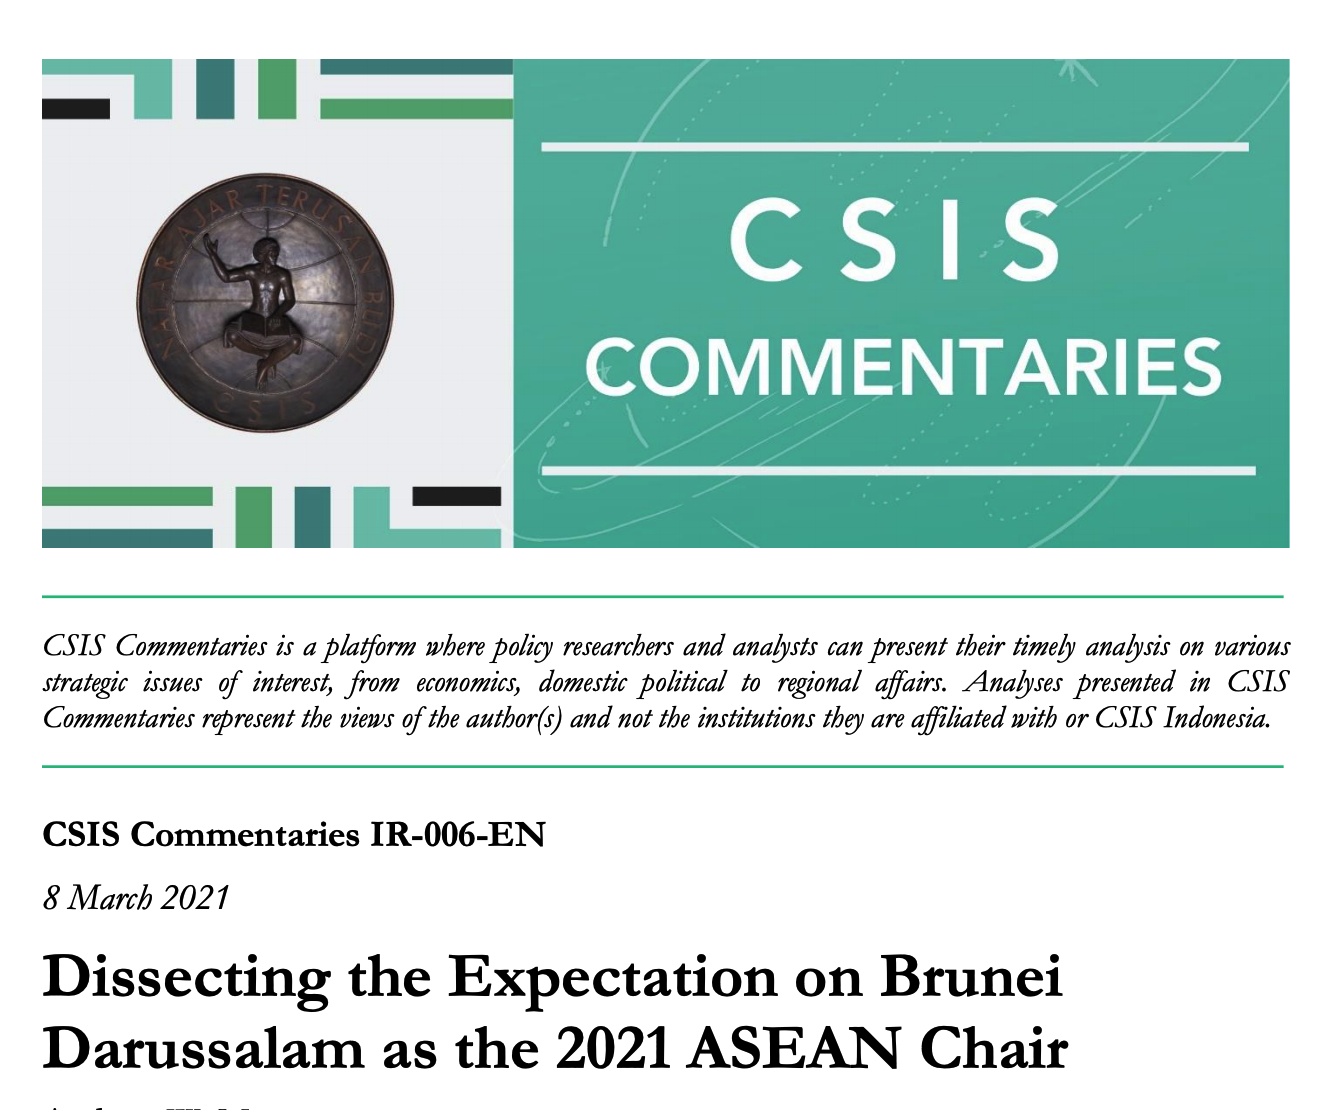 Dissecting the Expectation on Brunei Darussalam as the 2021 ASEAN Chair